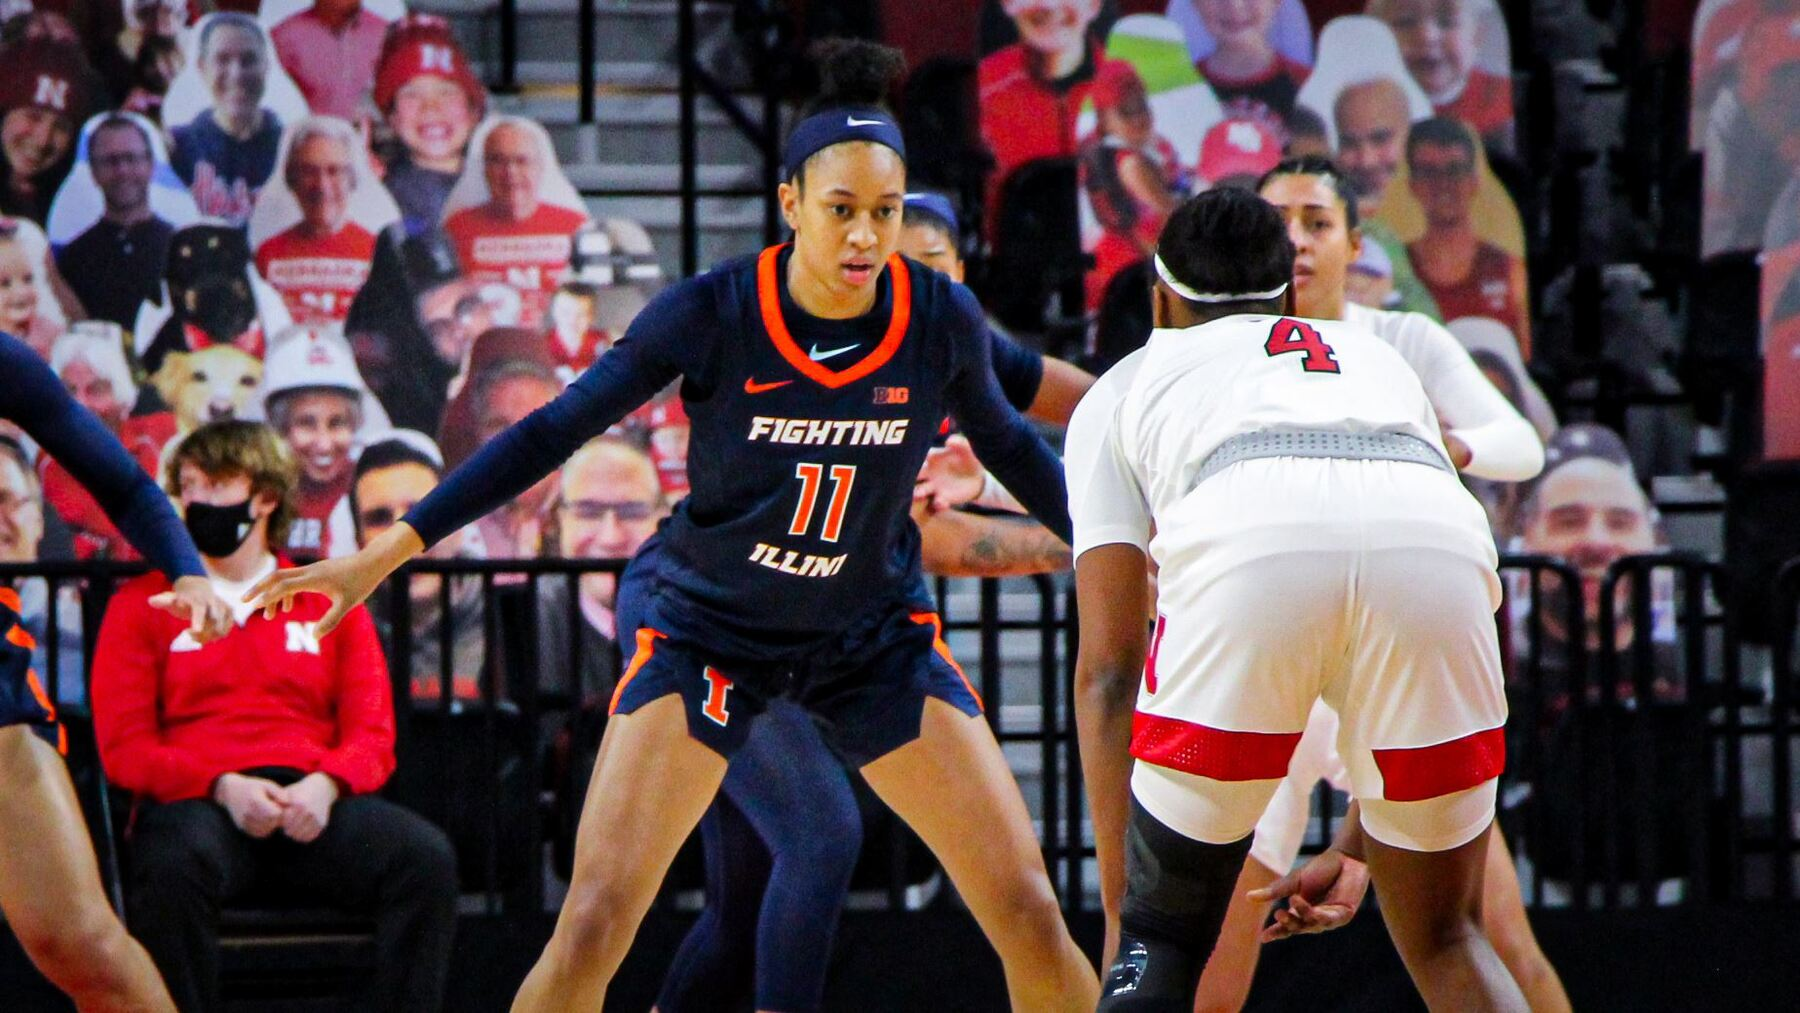 Guard Jada Peebles, who led the team with 16 points, on defense against Nebraska ball handler